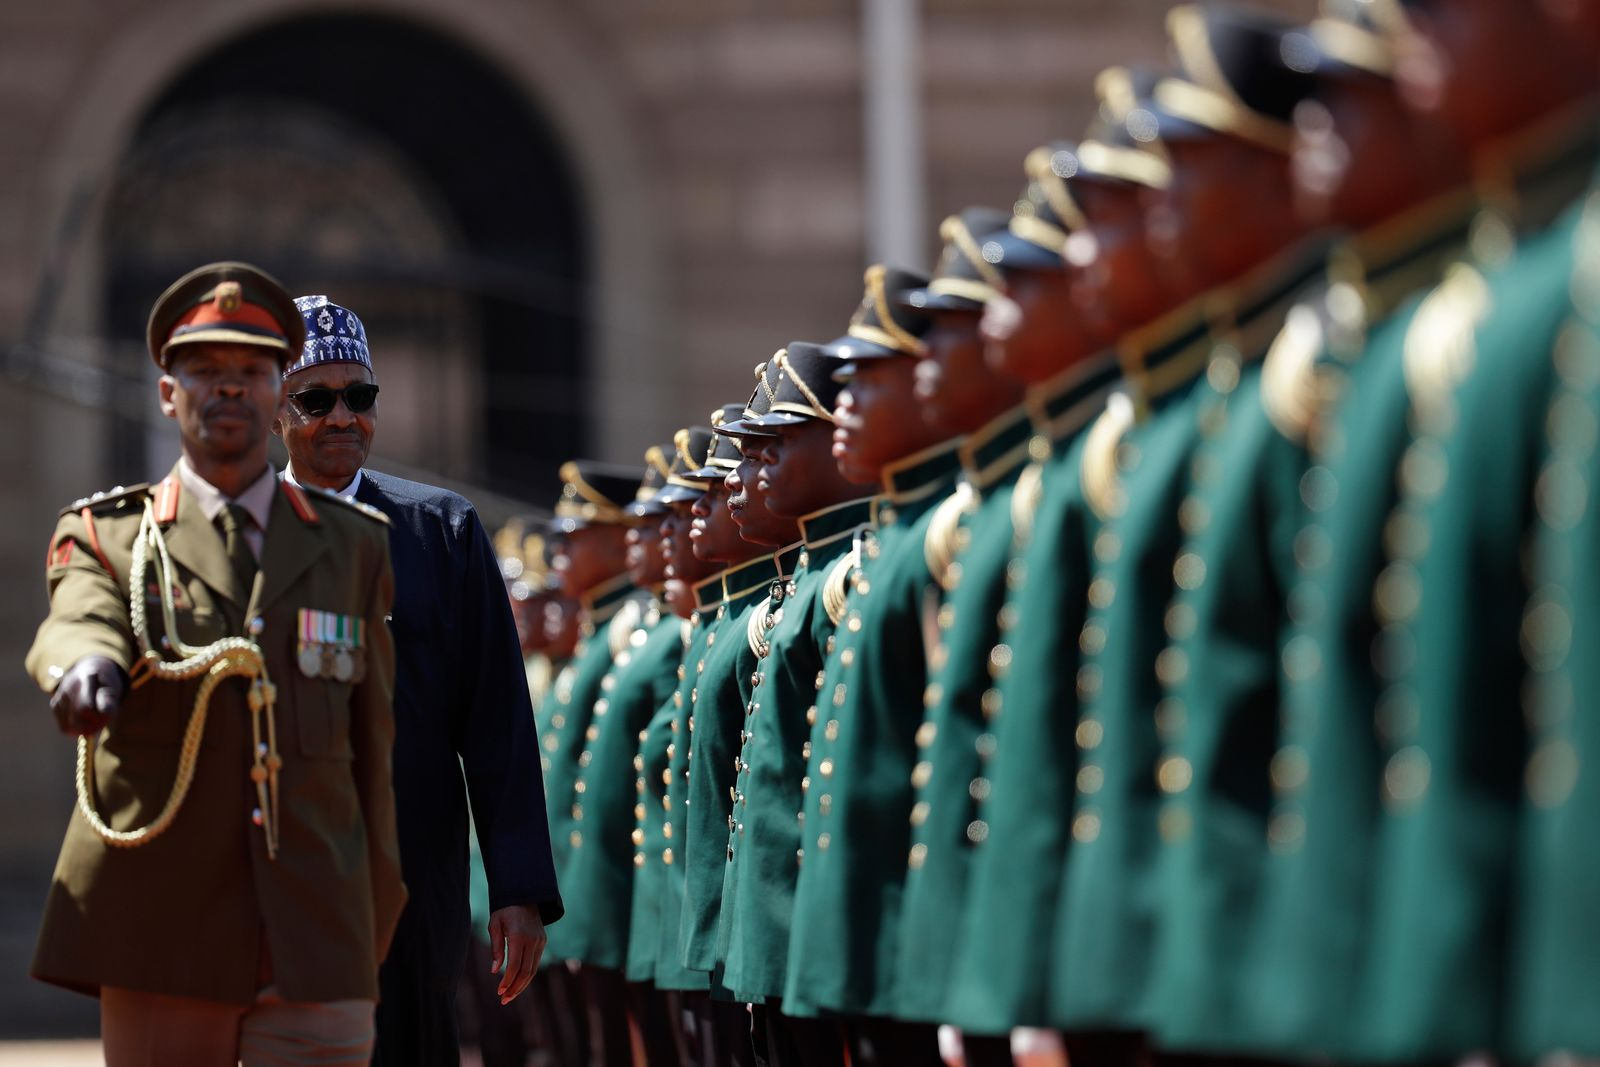 Nigerian President Muhammadu Buhari inspects a guard of honour at a welcoming ceremony in Pretoria, South Africa Thursday, Oct.3, 2019.{ } (AP Photo/Themba Hadebe)